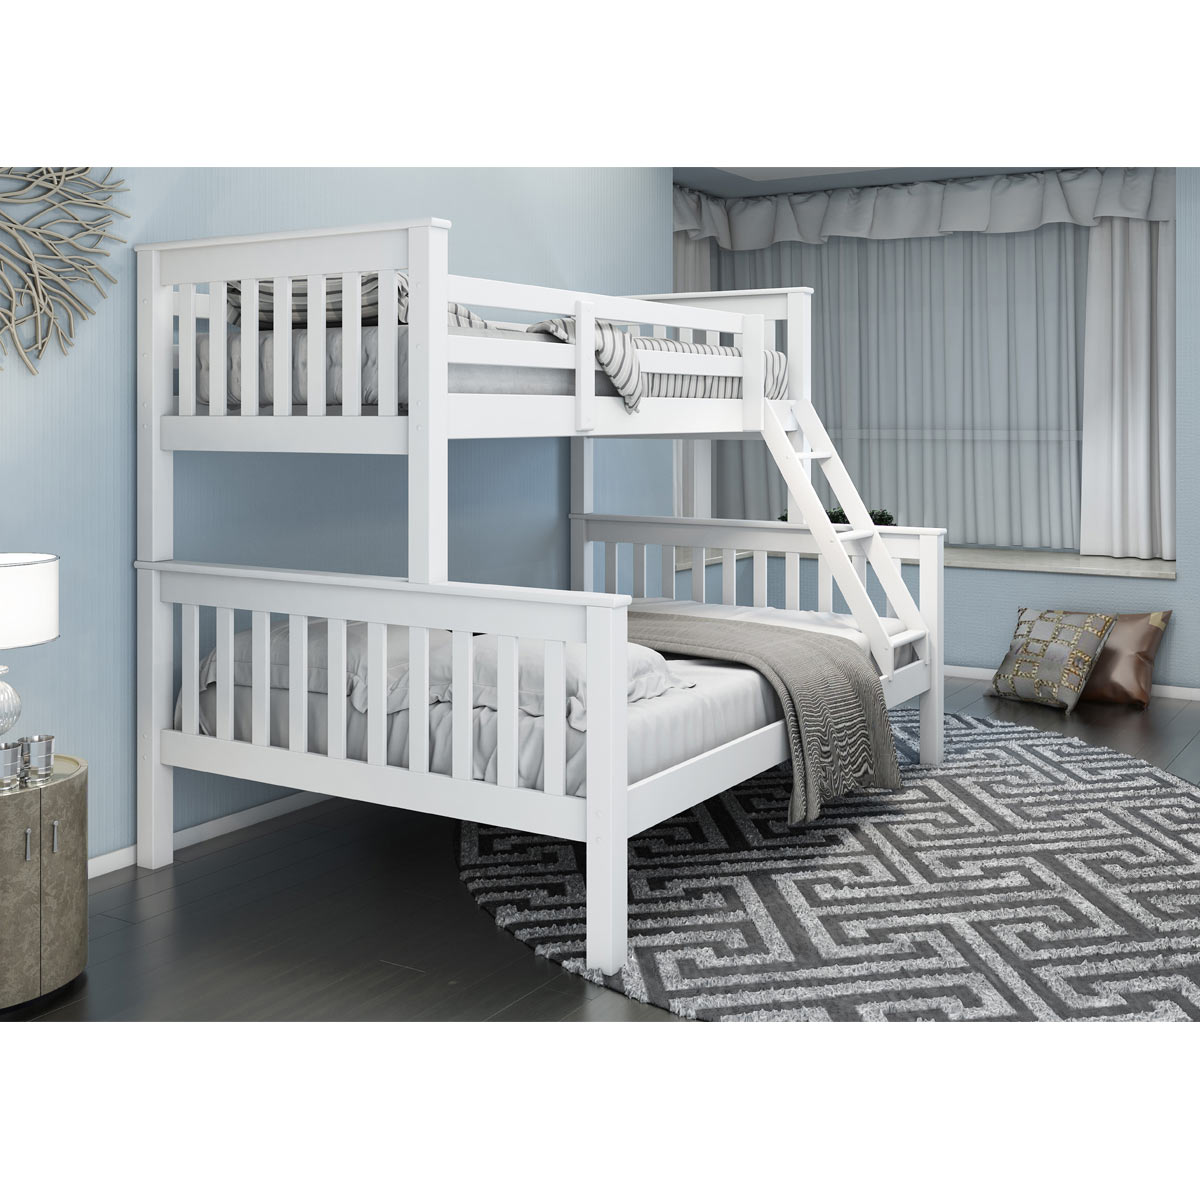 Halifax Trio Wooden Bunk Bed Better Bunk Beds Store